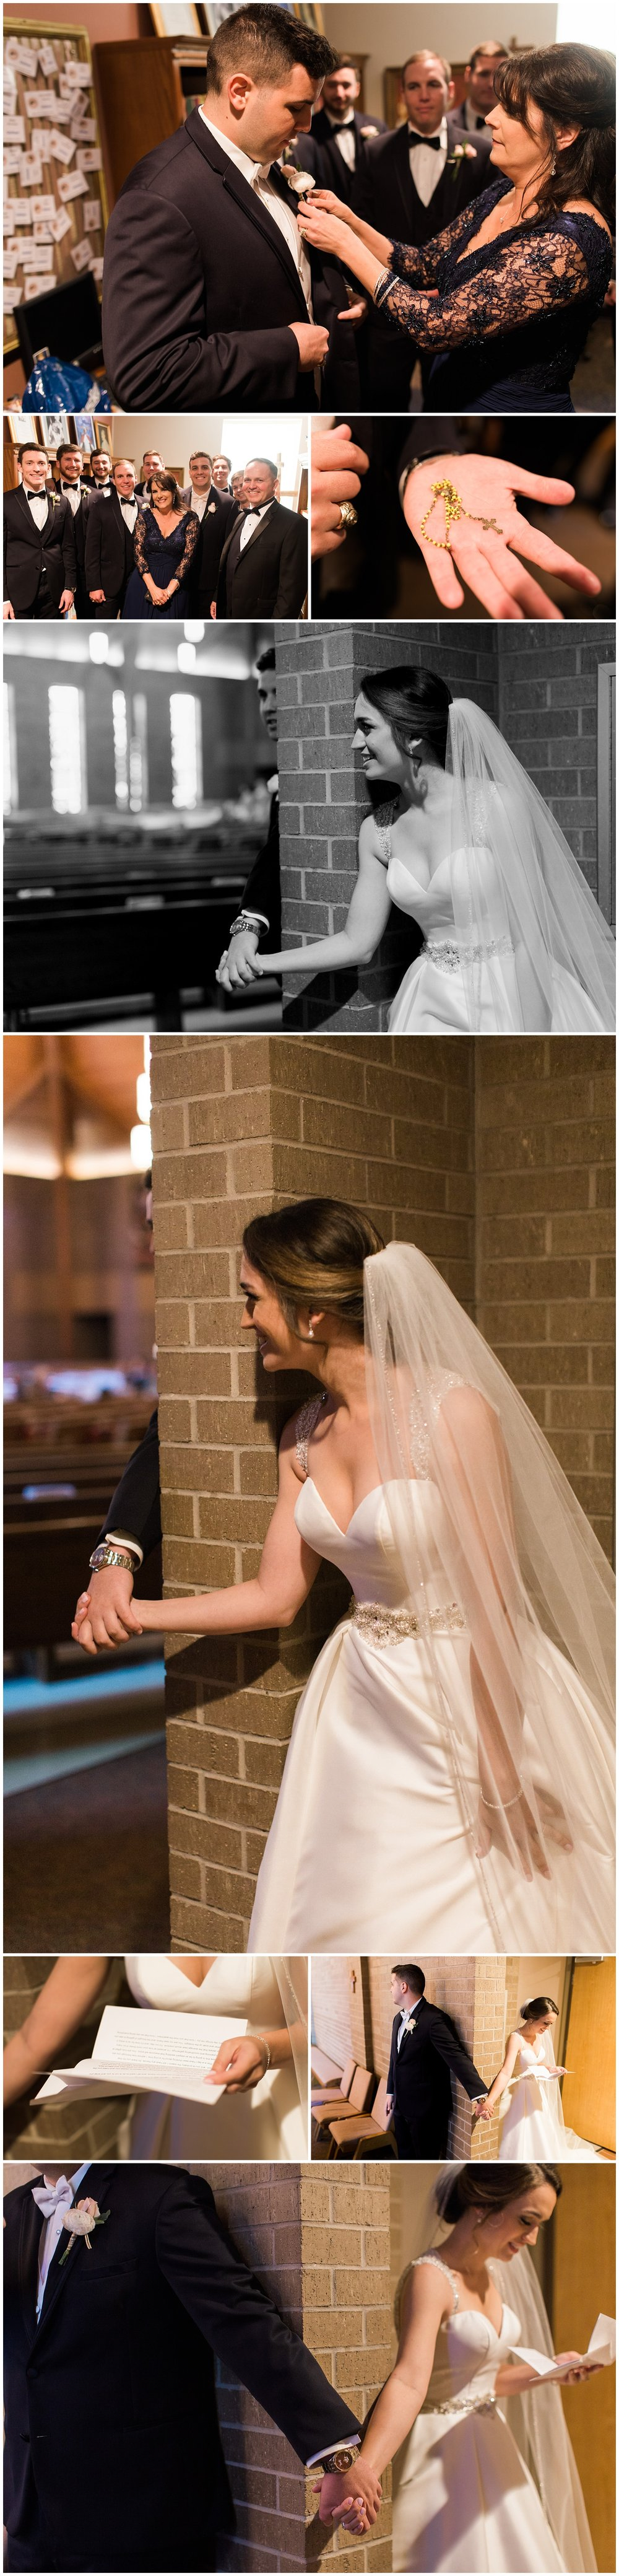 Brownstone_Reserve_Wedding_Kristina_Ross_Photography_0011.jpg